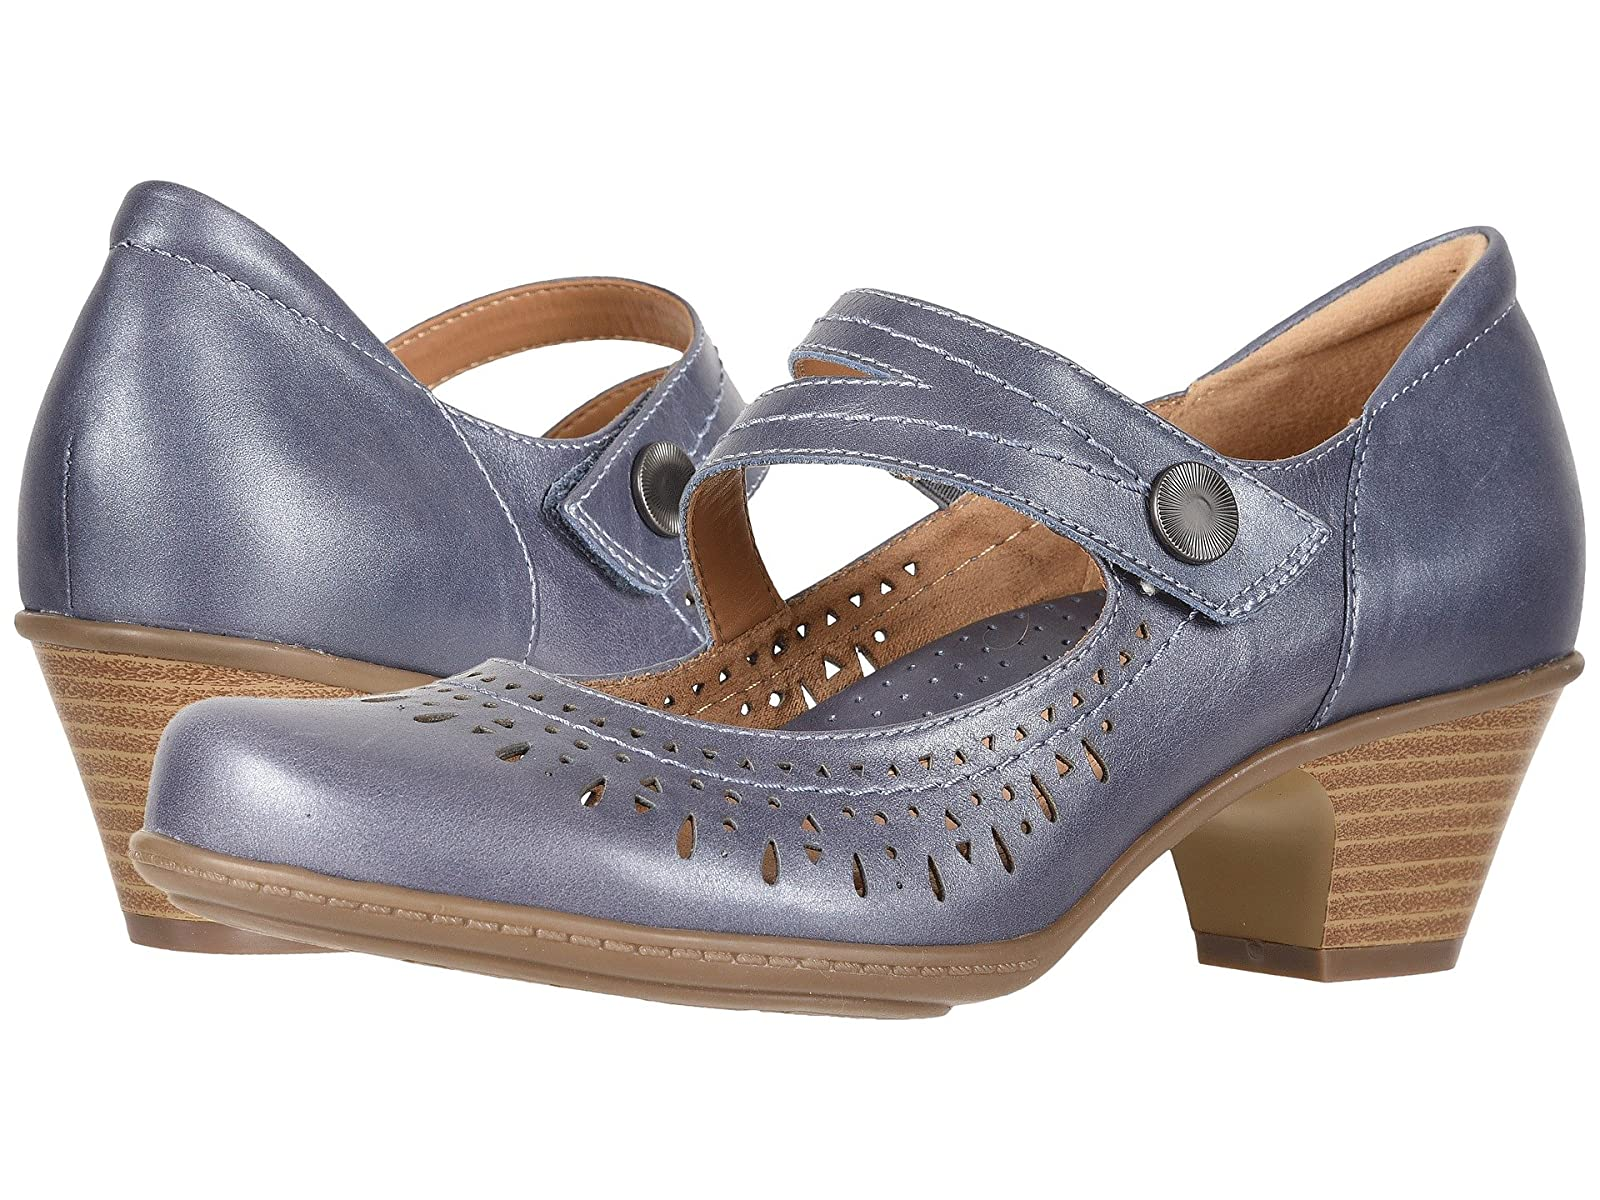 Earth DioneCheap and distinctive eye-catching shoes